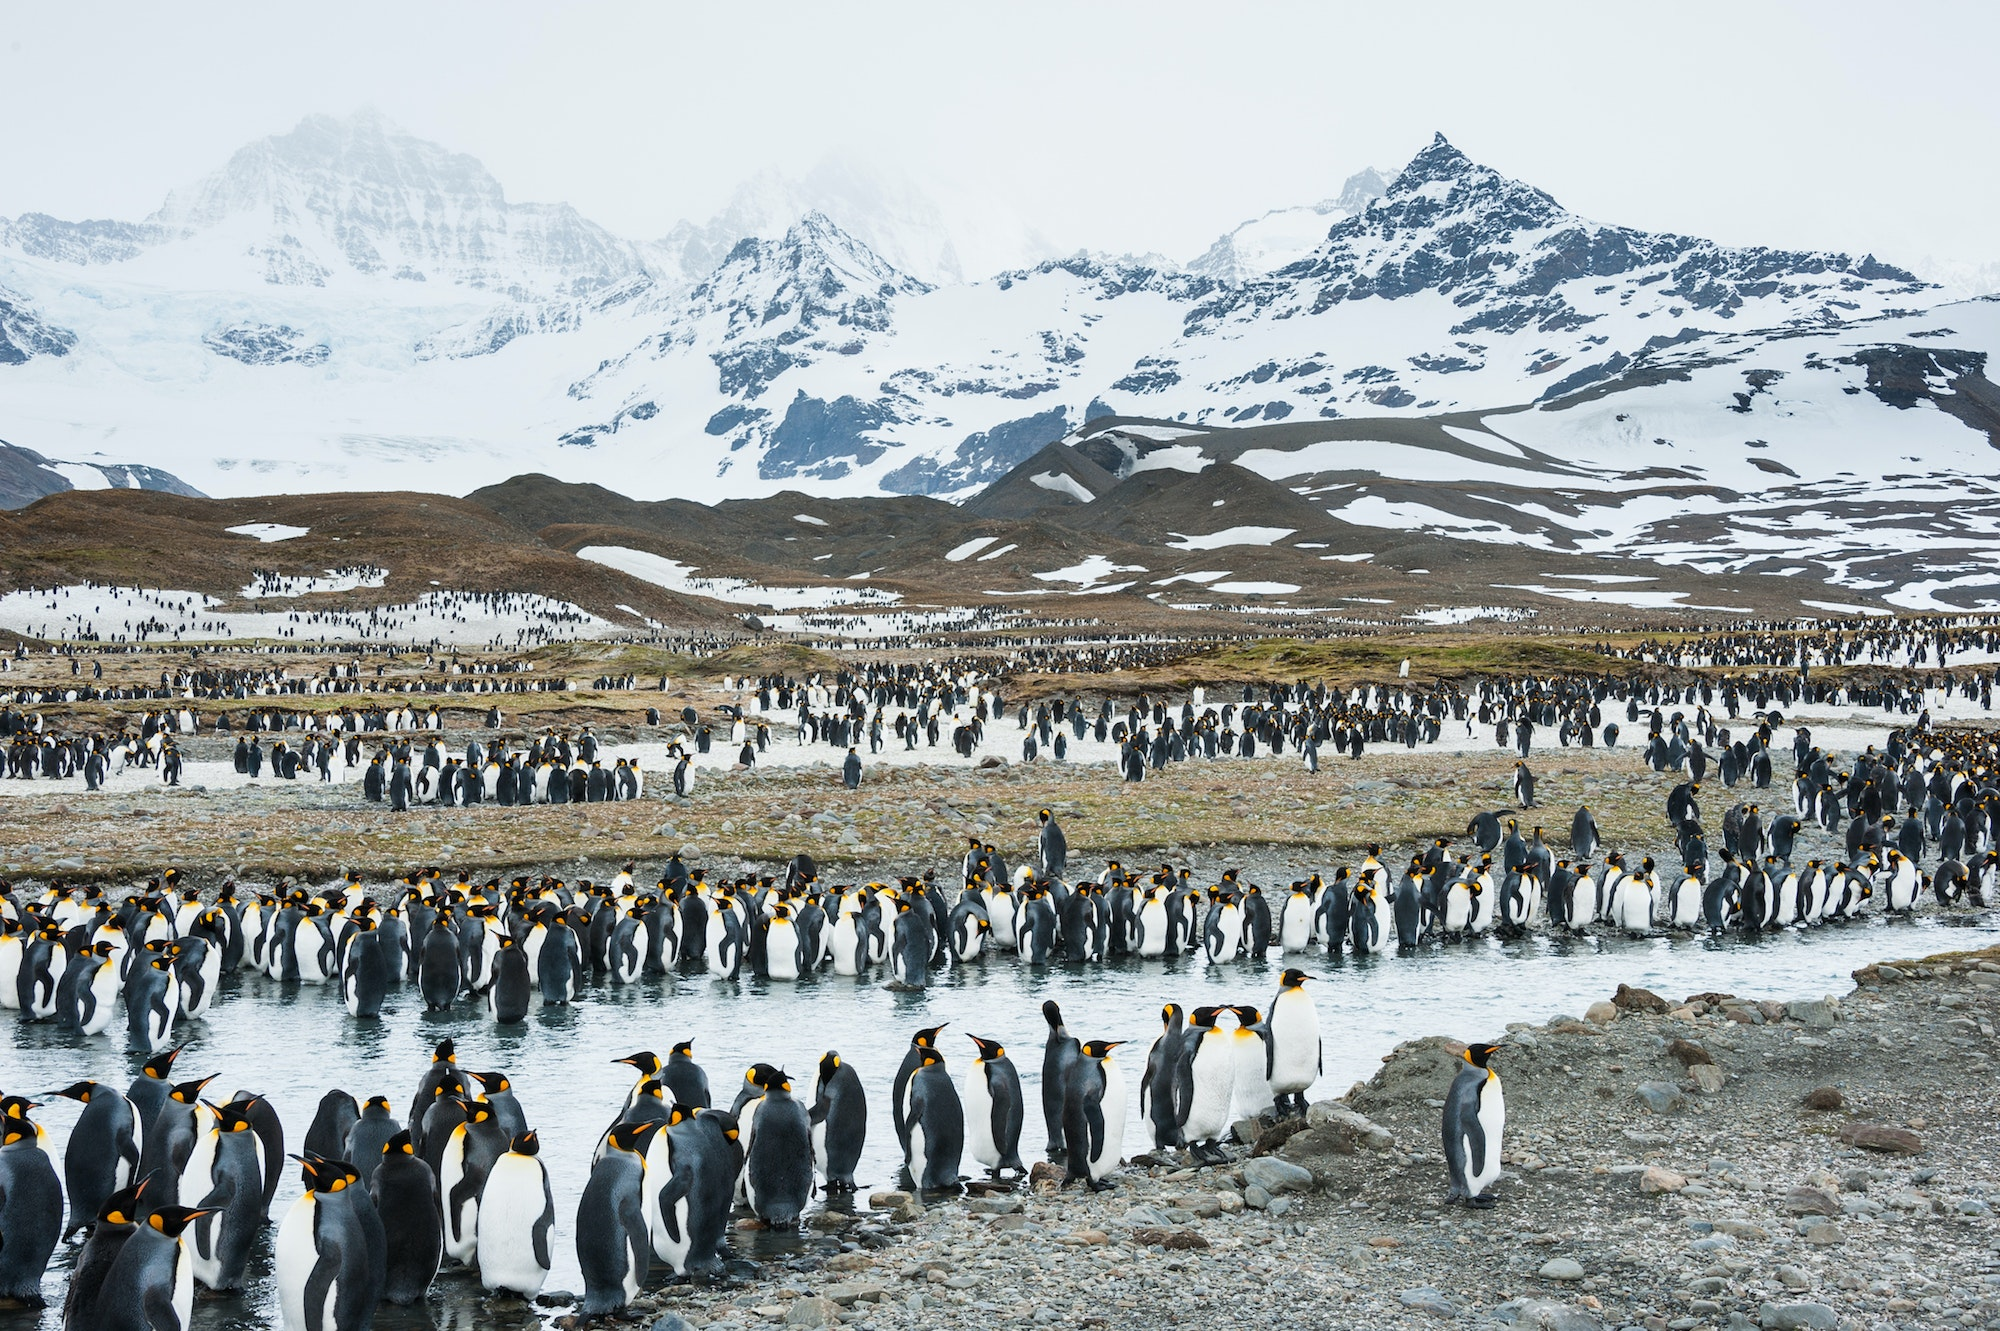 King penguins gather on the island of South Georgia (near Antarctica) to feed their newborn chicks.